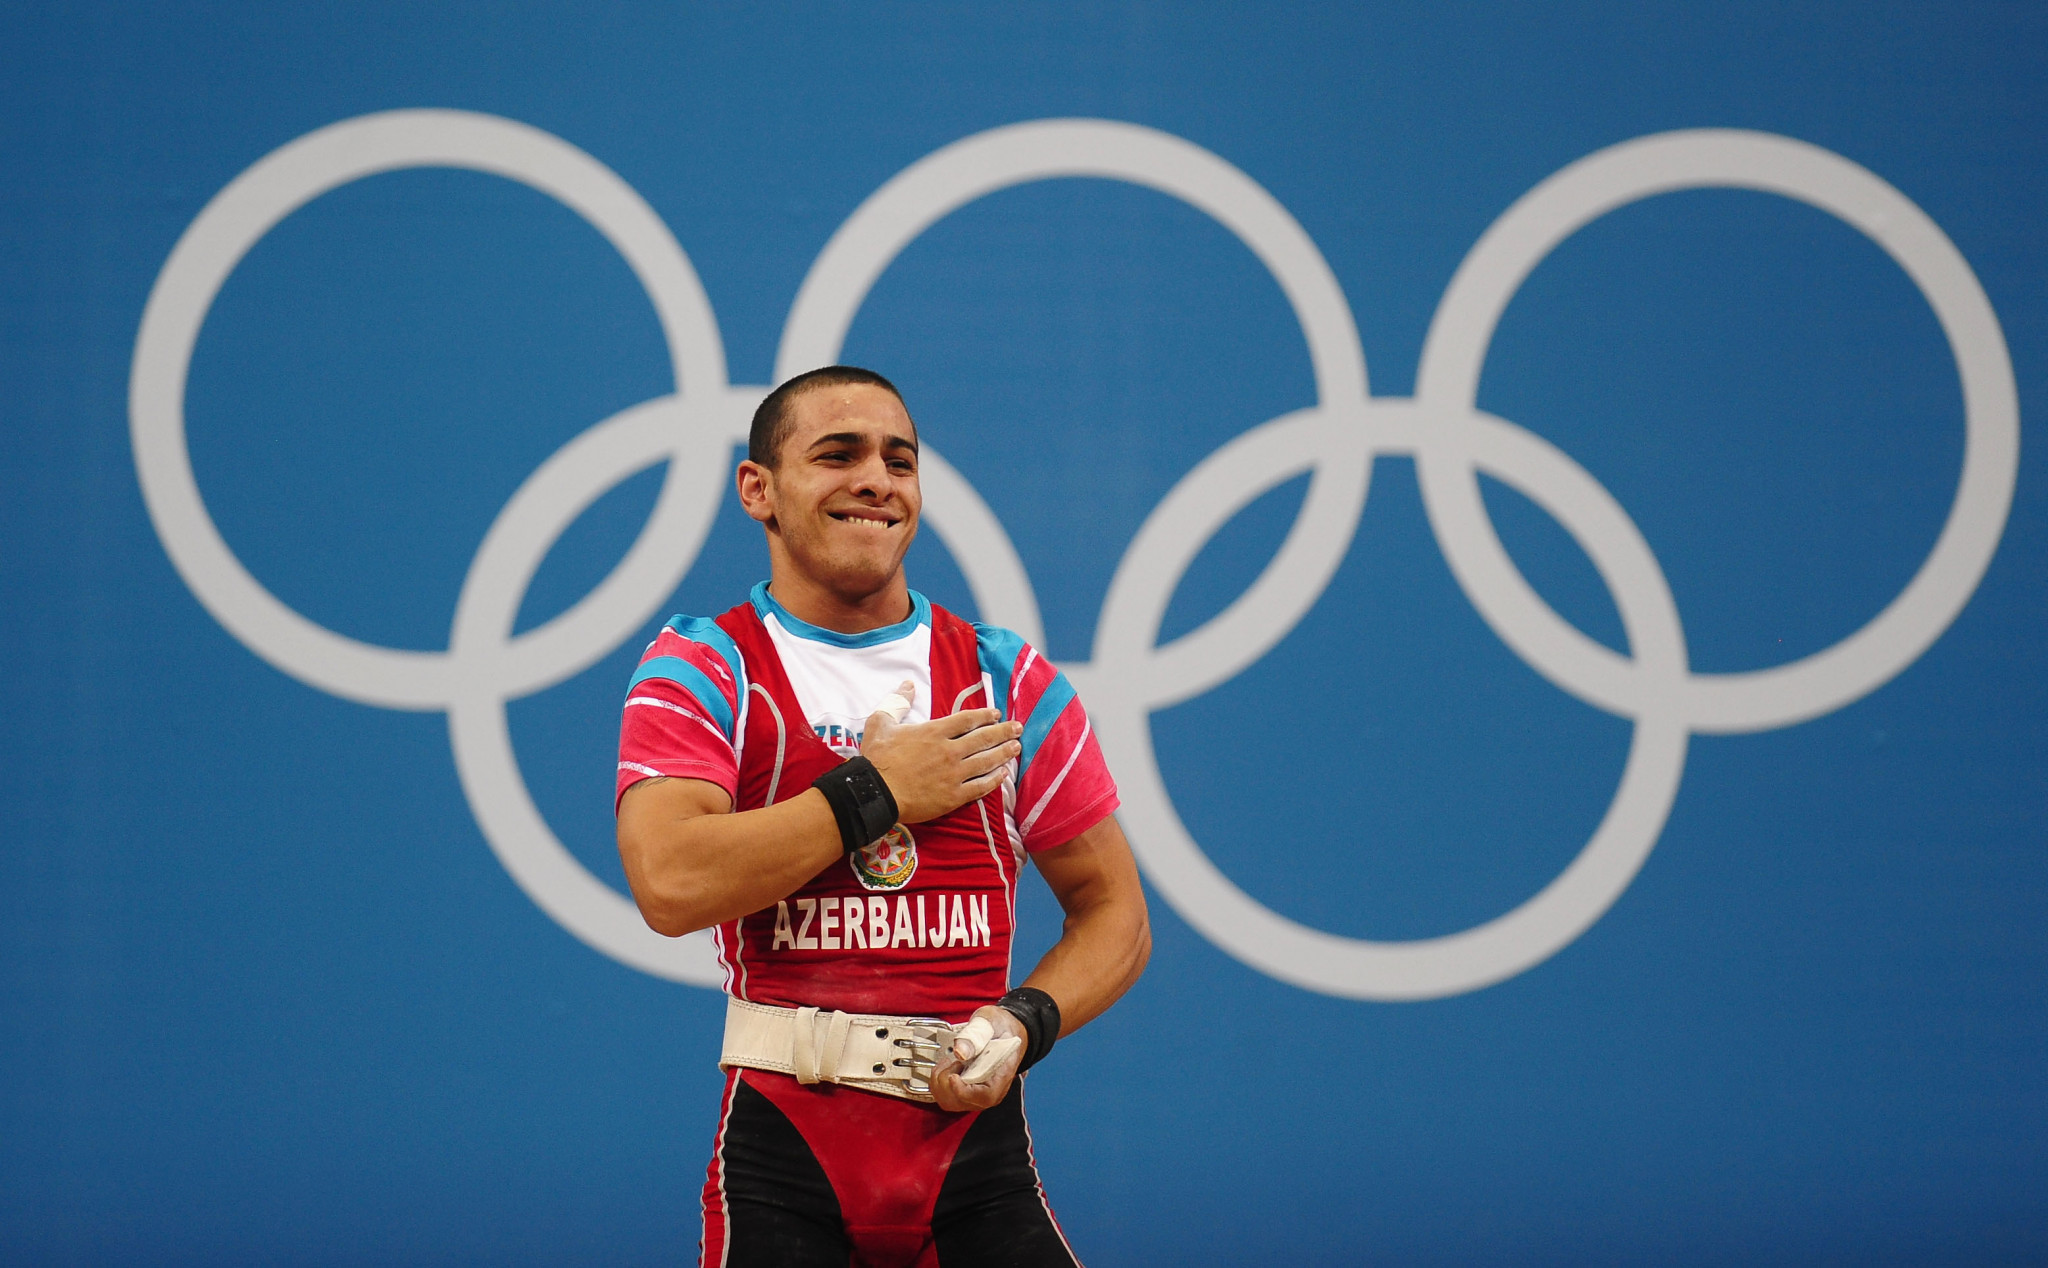 Azerbaijan weightlifter facing life ban after caught doping in IOC retests from London 2012